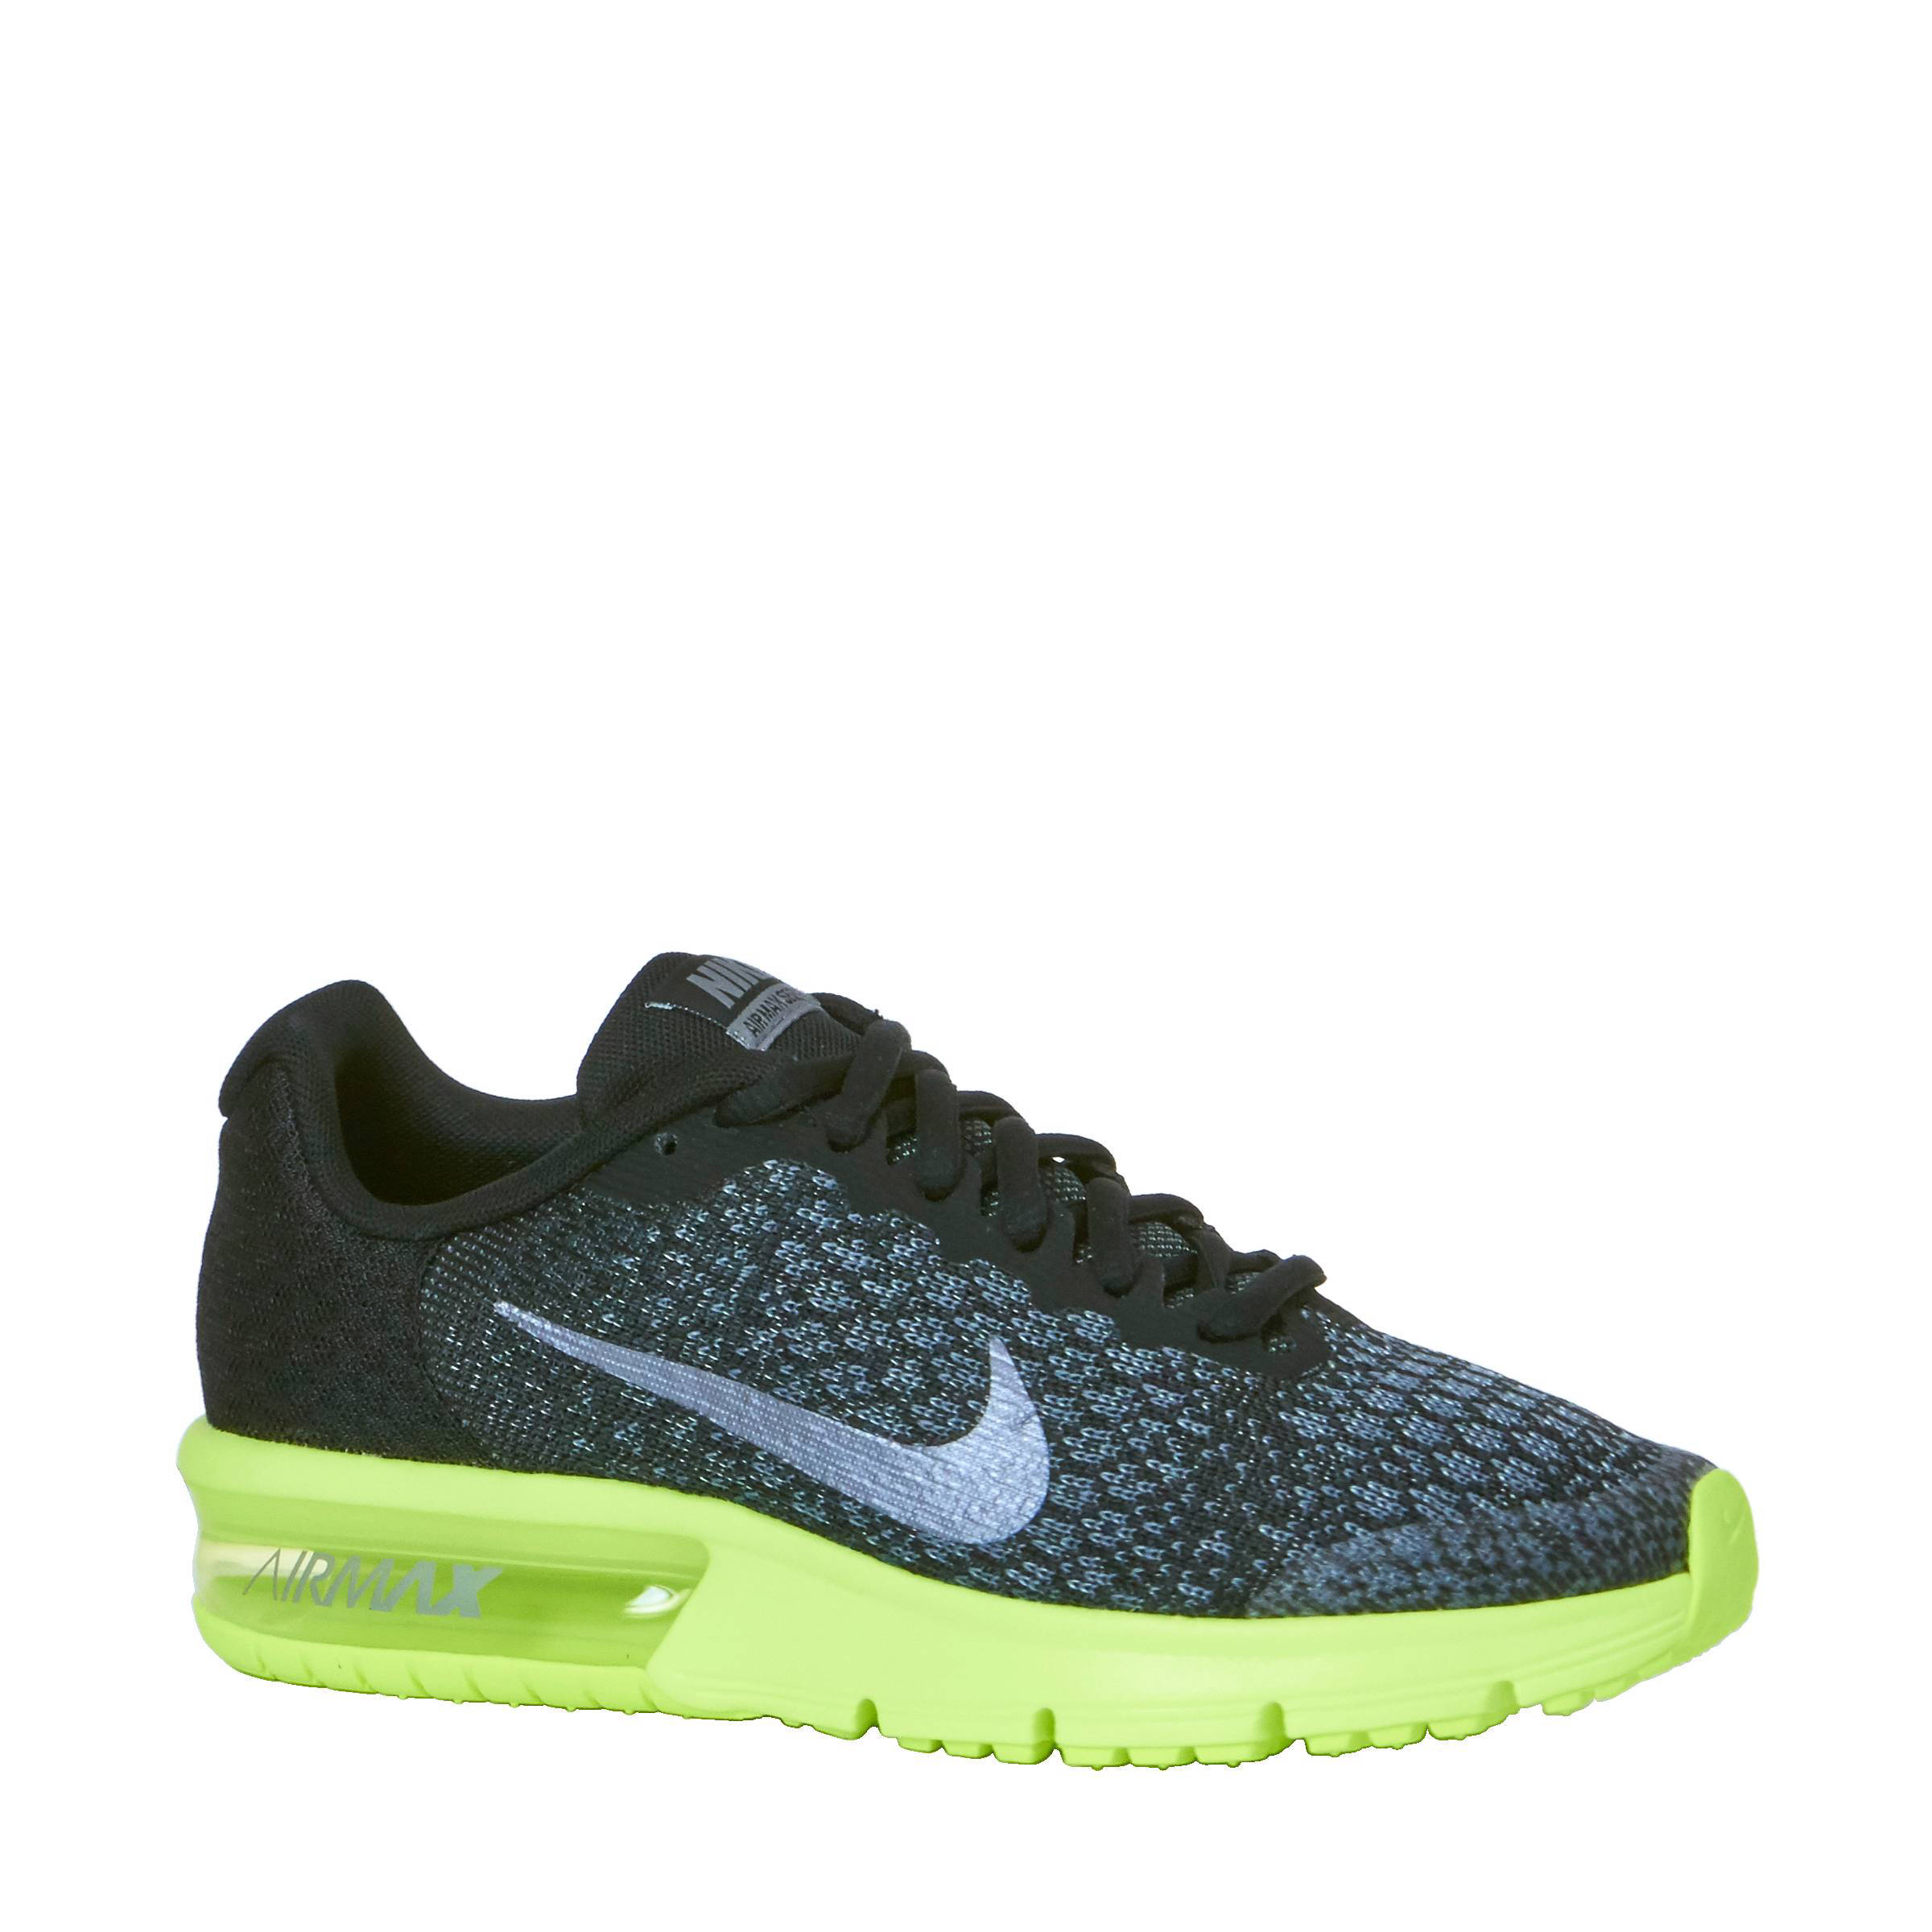 nike air max sequent 2 dames zwart